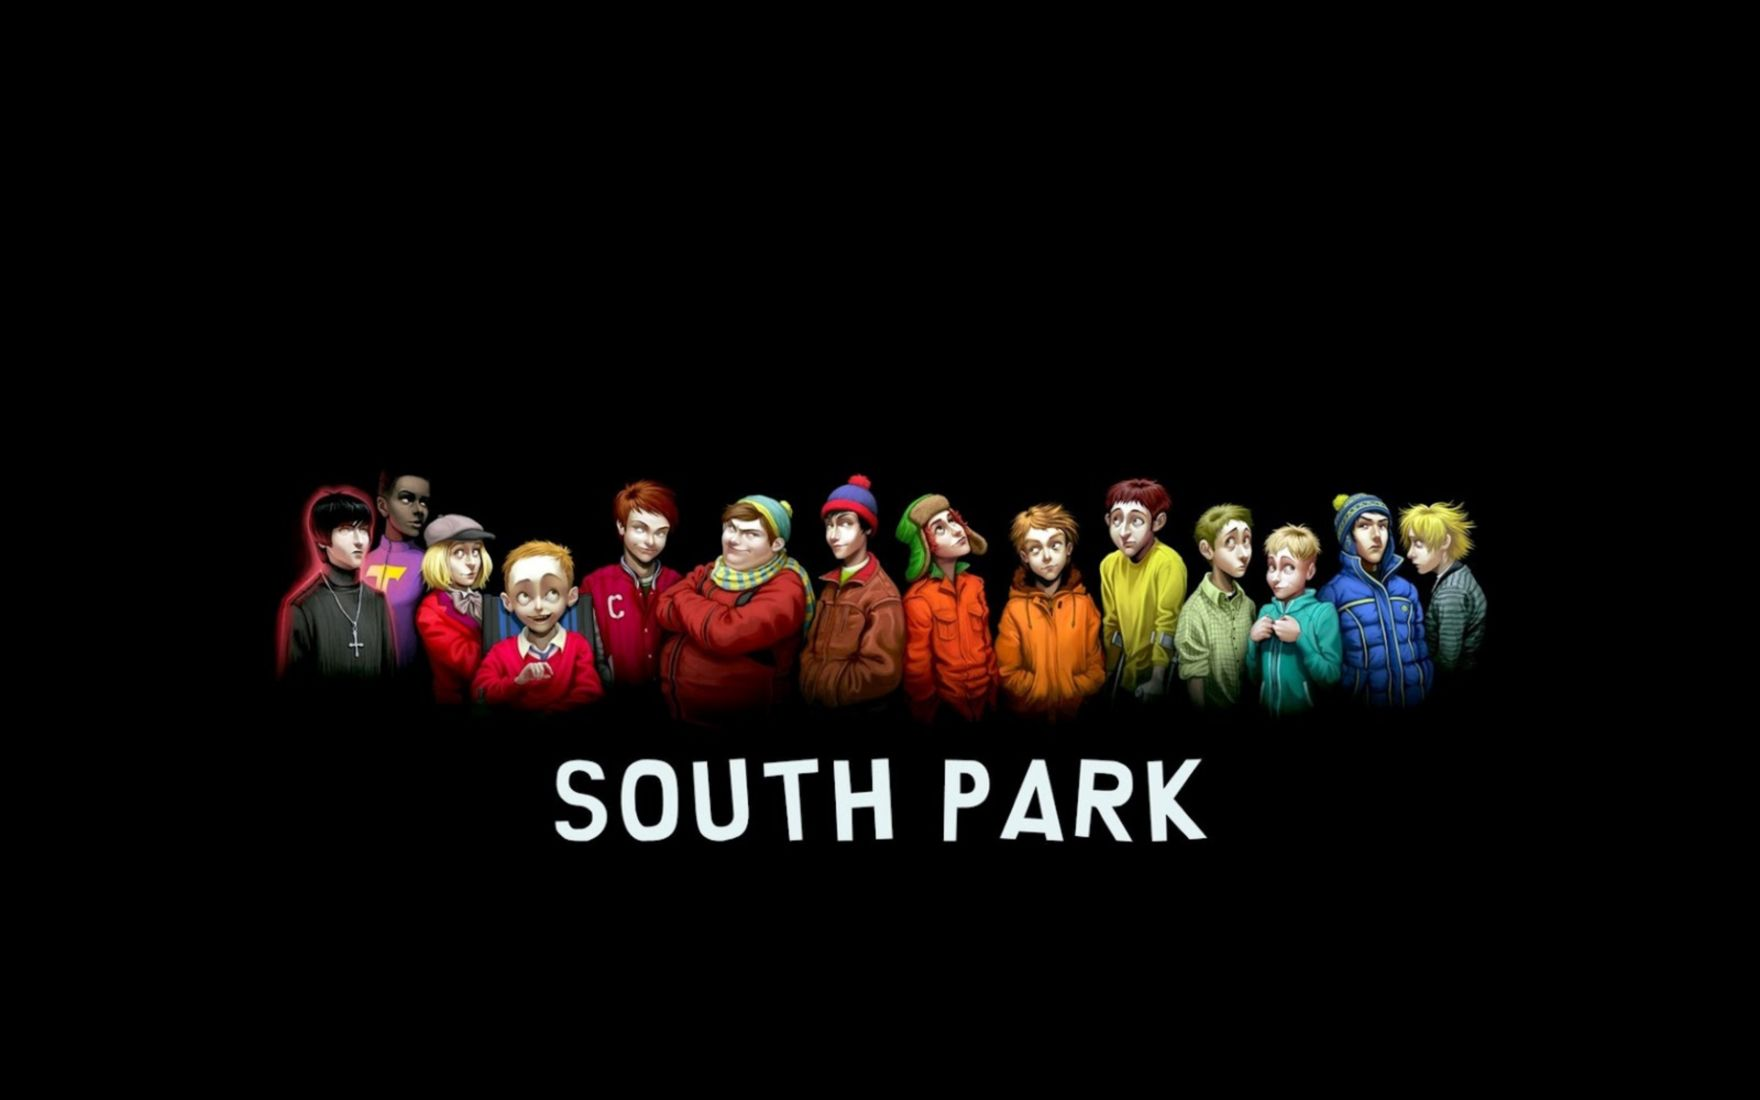 south park funny wallpaper: desktop hd wallpaper - download free